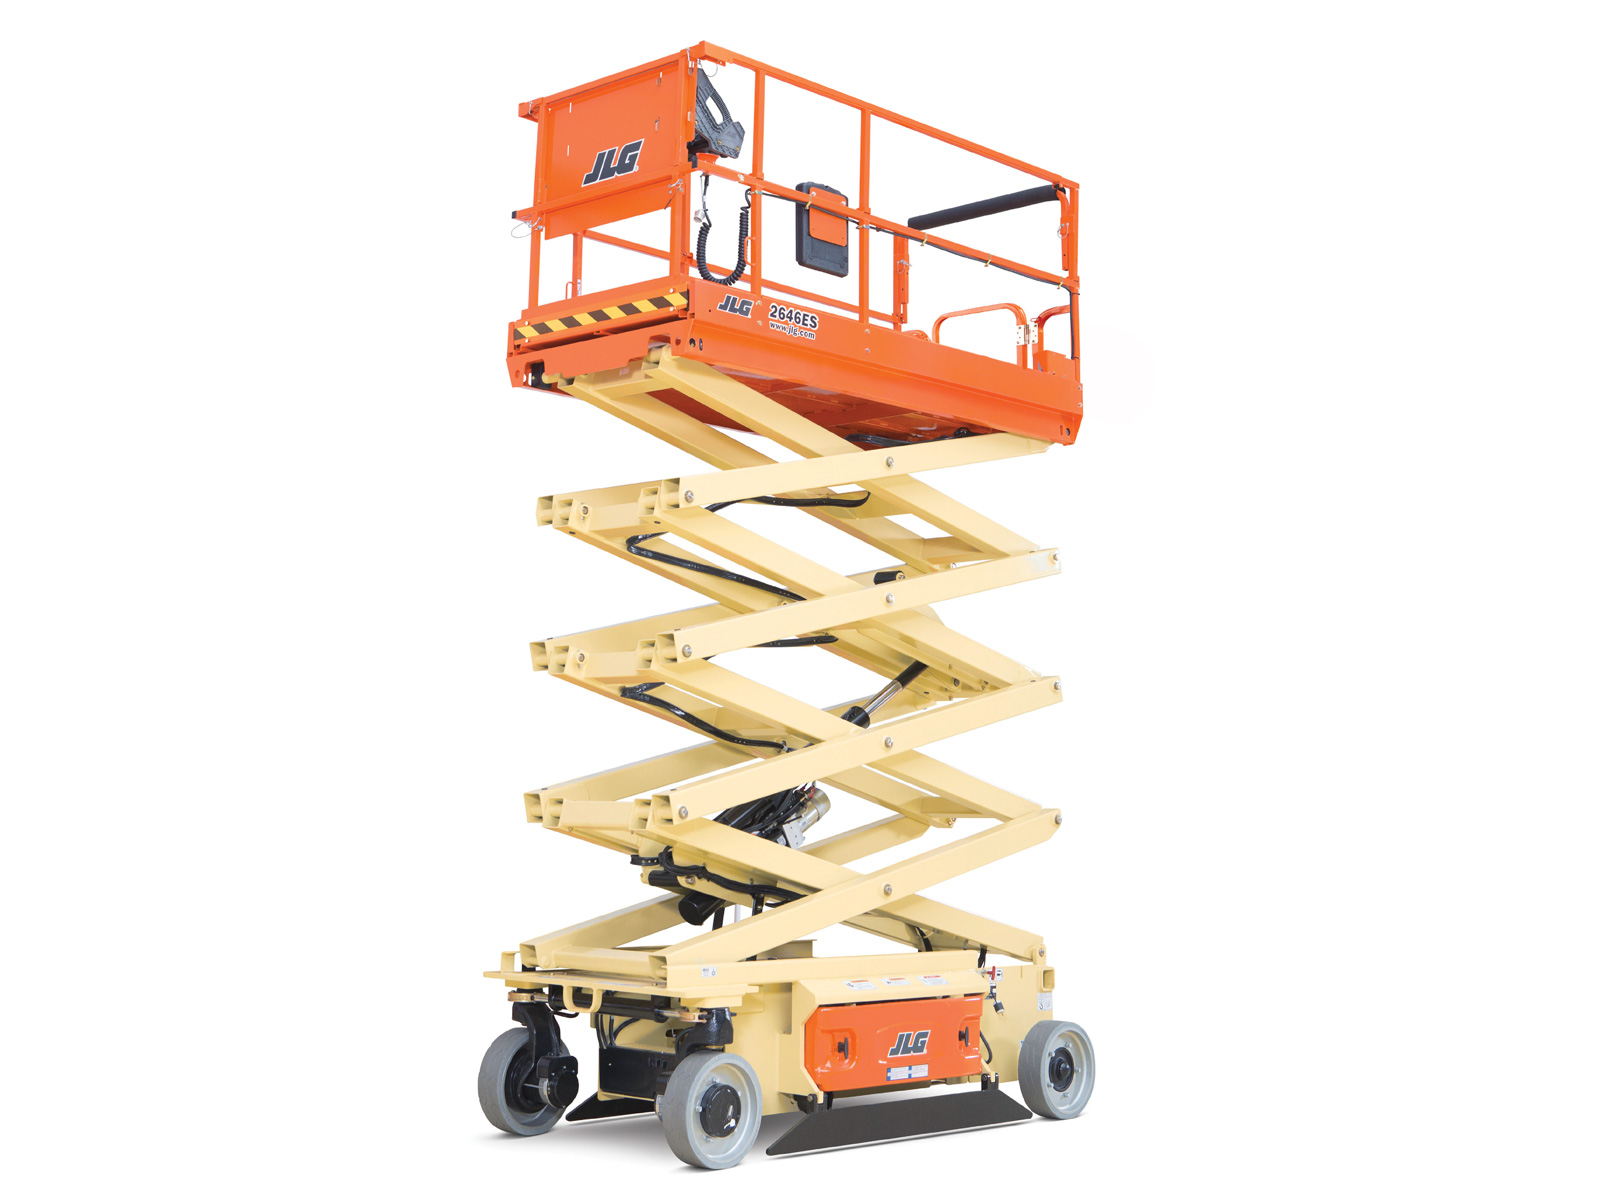 Jlg Cm2546 Wiring Diagram And Schematics Manuals Source 2632es Electric Scissor Lift Rh Com 1932